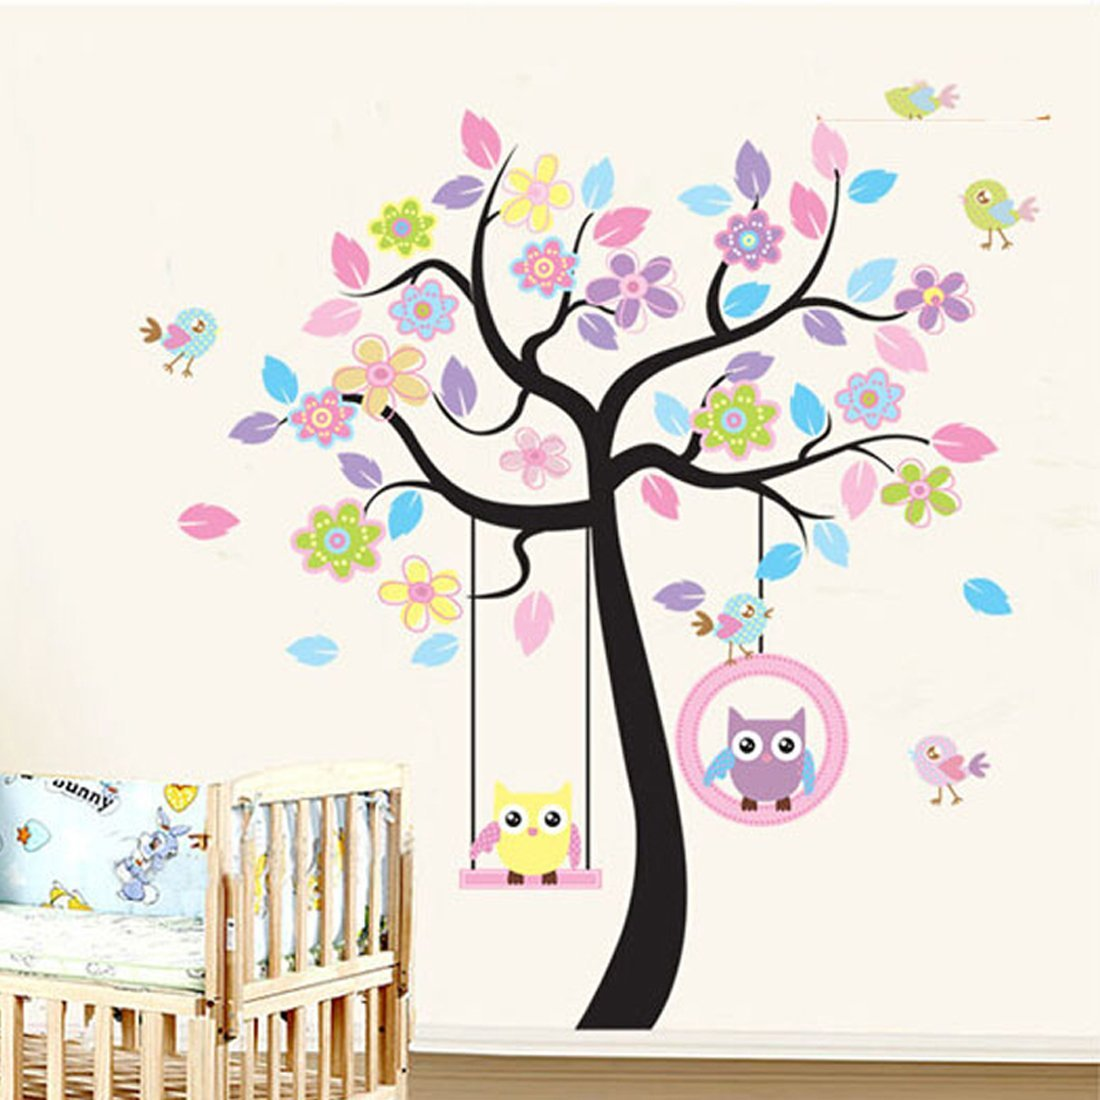 Colorful Tree Flowers Lovely Owls Birds Wall Decal Home Sticker Paper Removable Living Dinning Room Bedroom Kitchen Art Picture Murals DIY Stick Girls Boys kids Nursery Baby Playroom Decoration + Gift Colorful Butterflies fashionbeautybuy